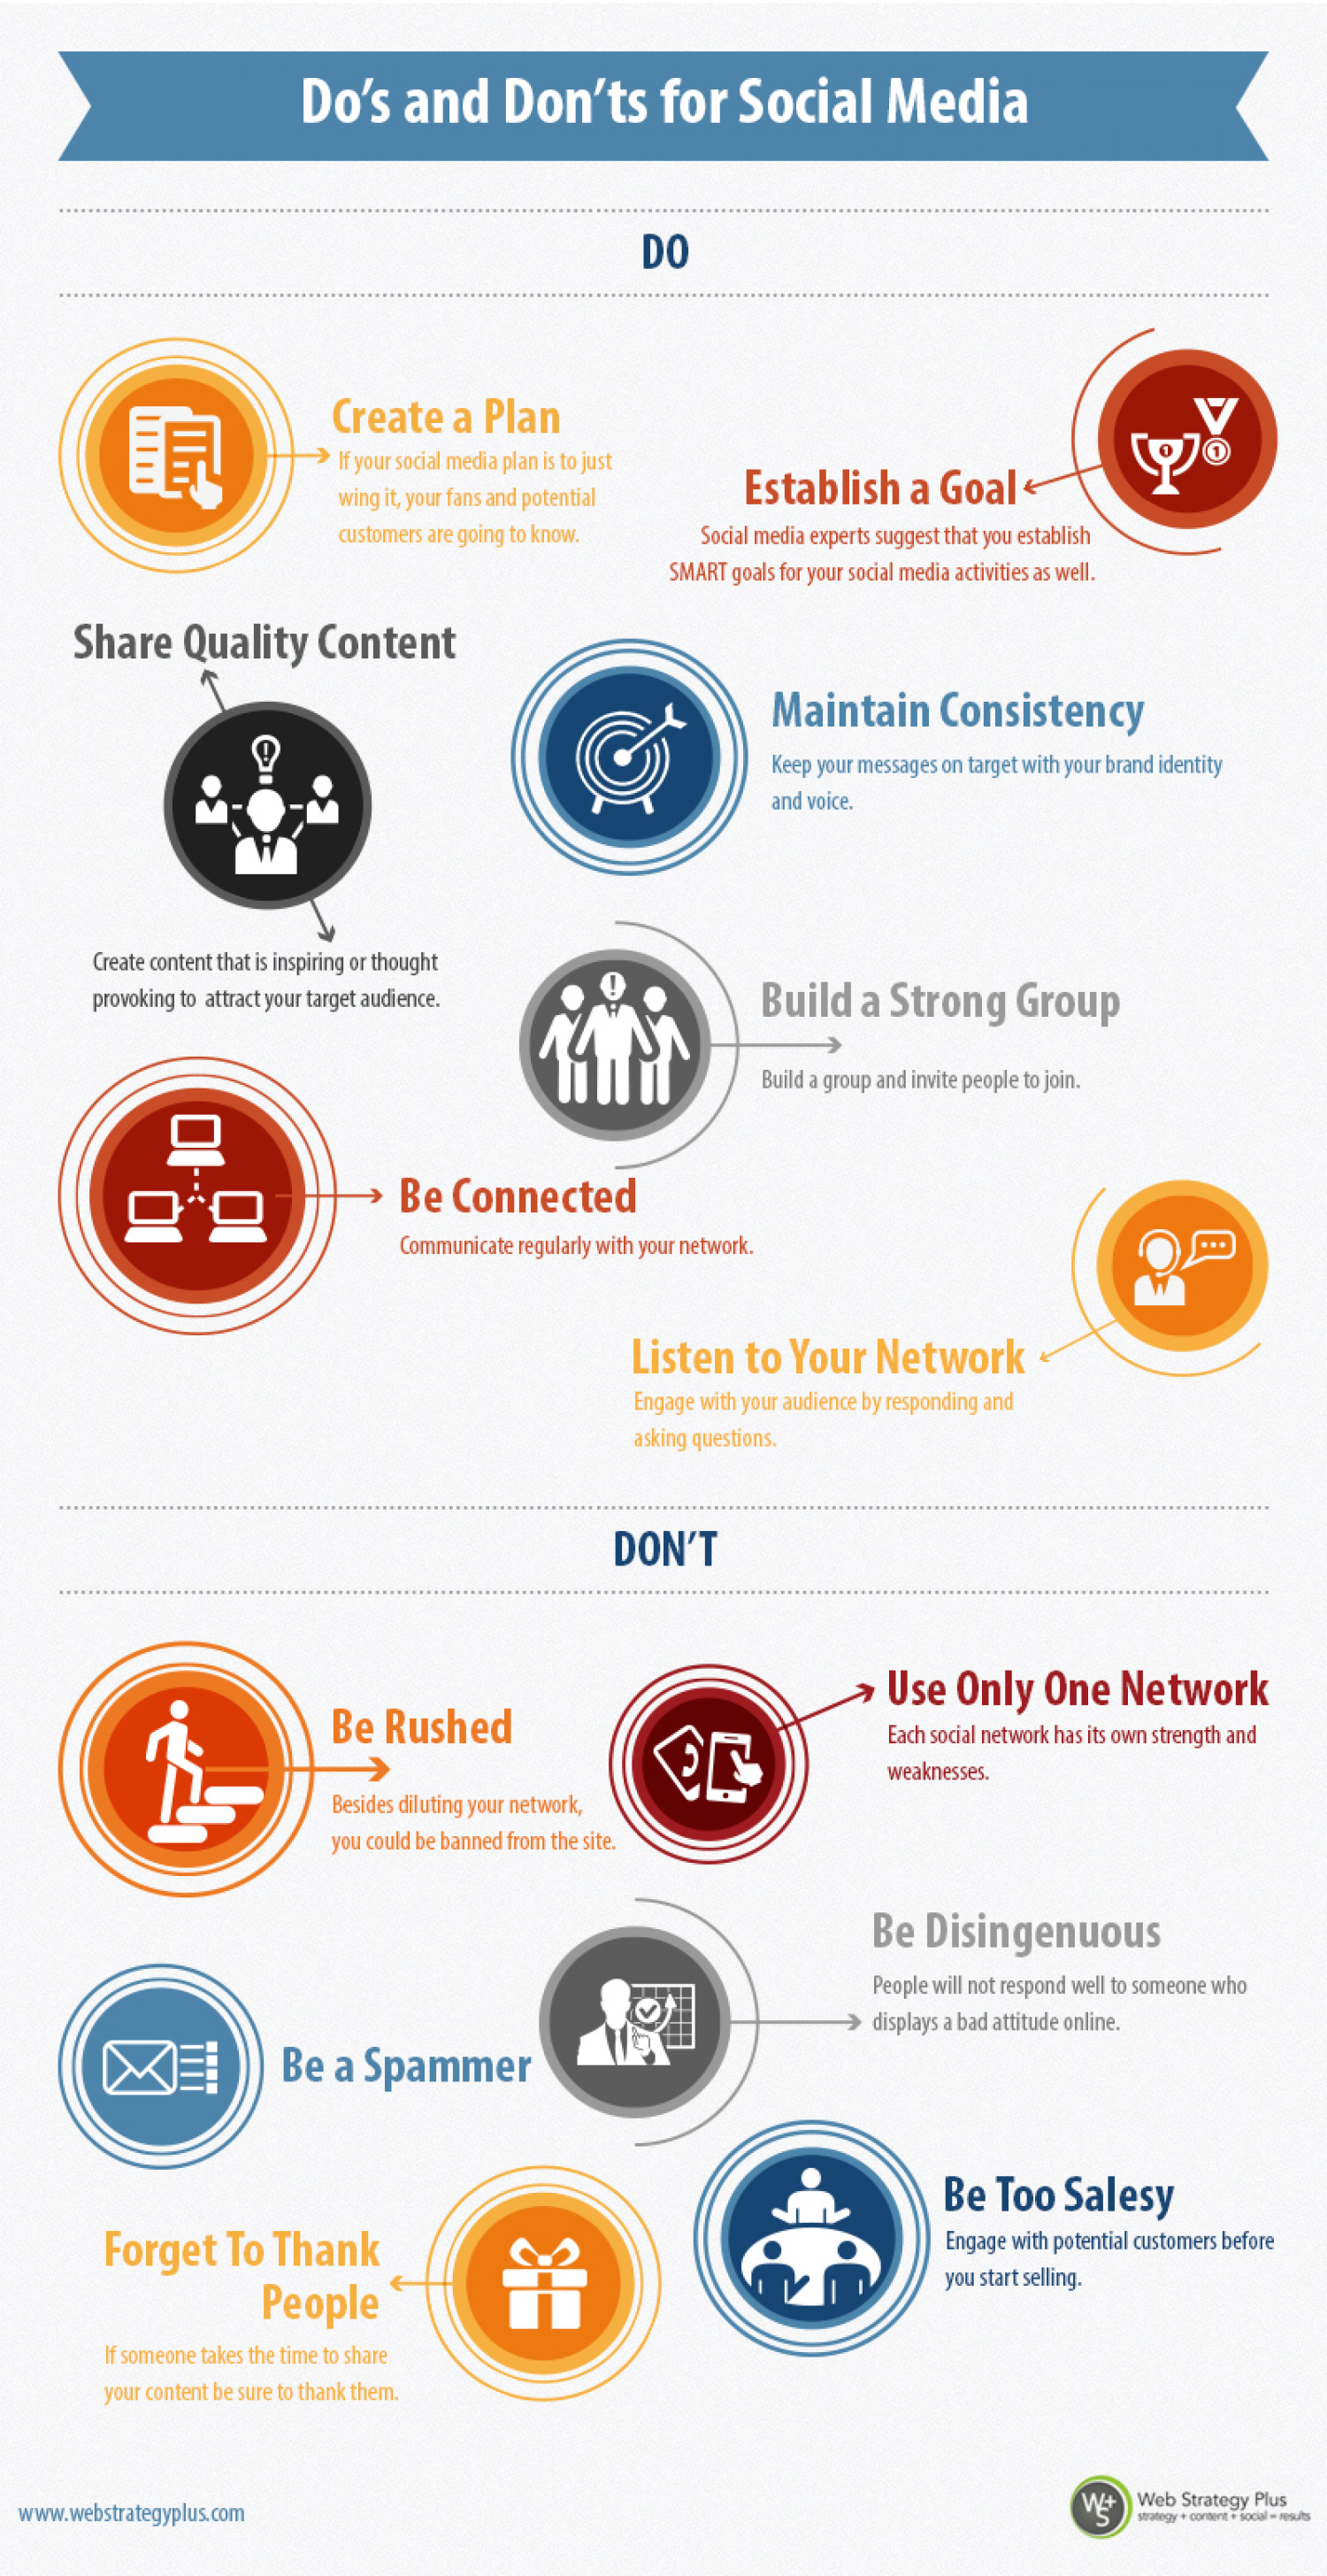 Do's and Don'ts for Social Media Infographic